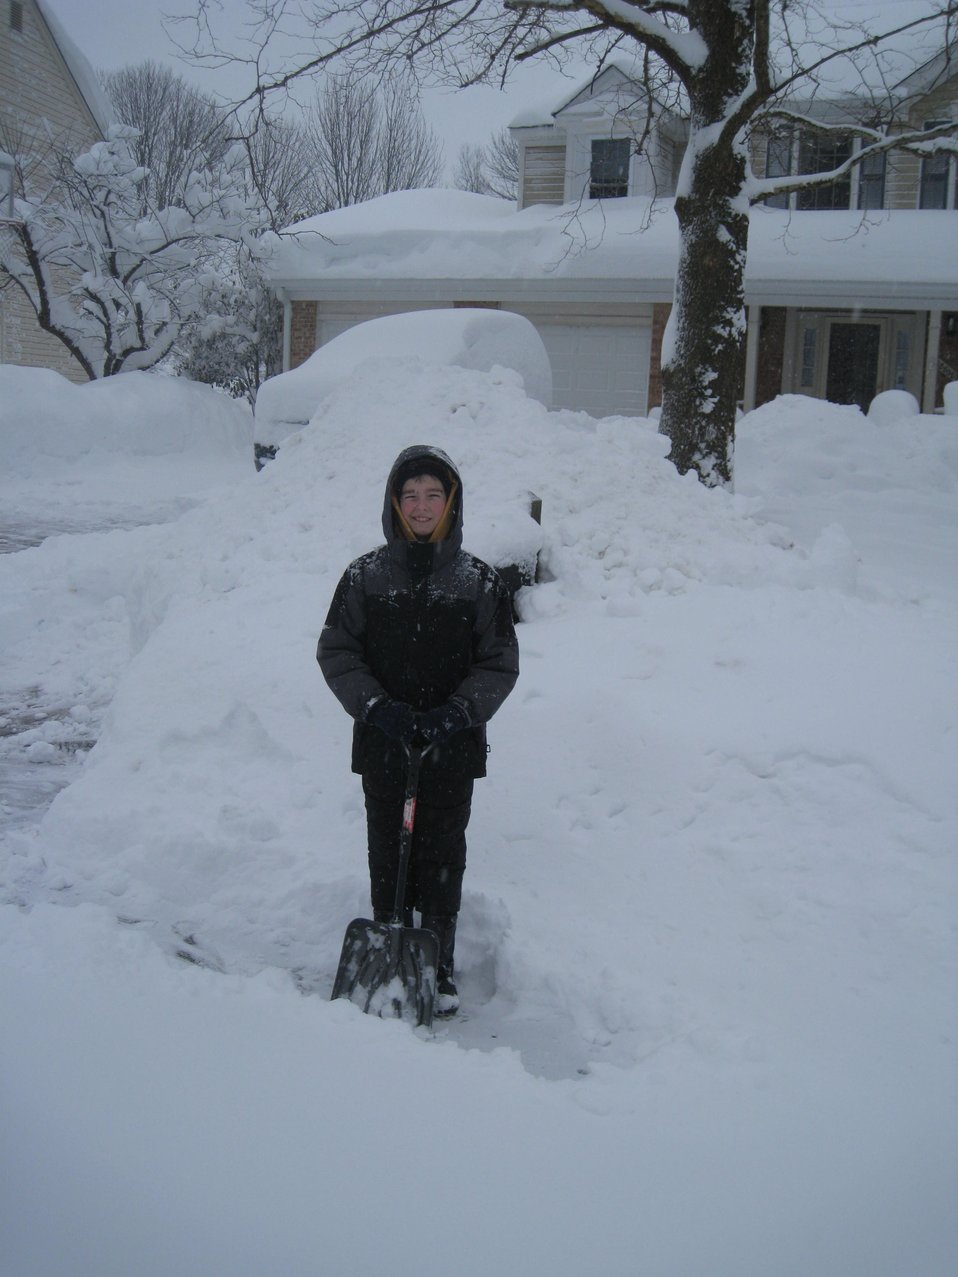 Shoveling out driveways led to 6-foot and greater piles of snow.